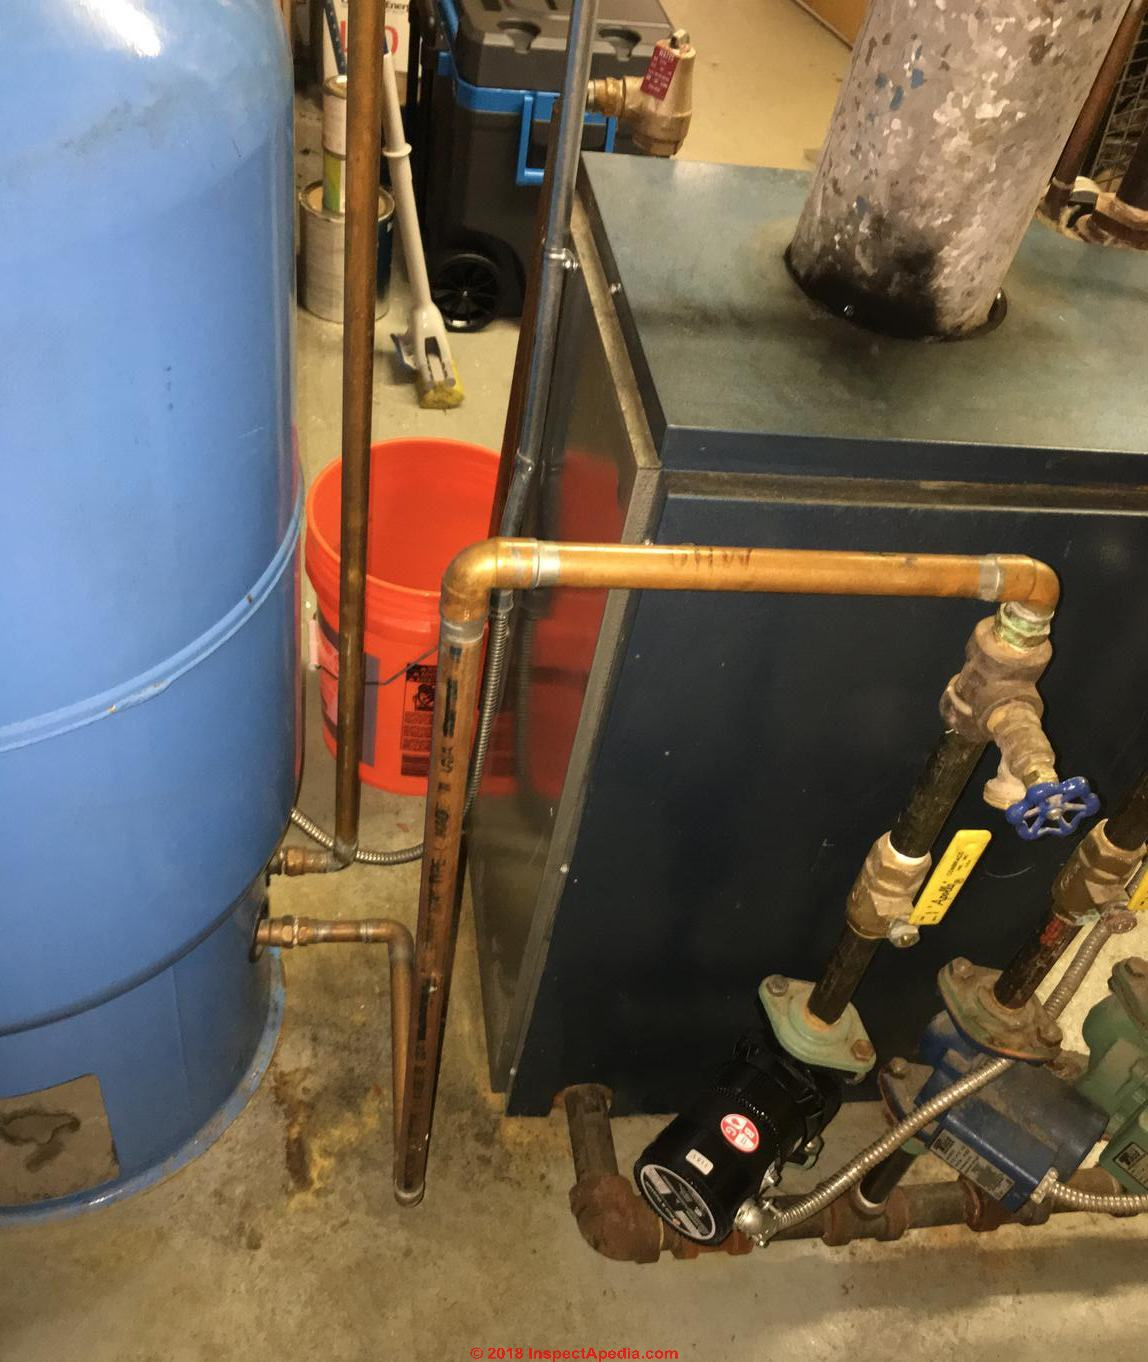 Indirect fired hot water heater FAQs on plug for water heater, wiring diagram for water pump, compressor for water heater, motor for water heater, circuit breaker for water heater, wire for water heater, timer for water heater, thermocouple for water heater, hose for water heater, switch for water heater, exhaust for water heater, coil for water heater, expansion tank for water heater, thermostat for water heater, valve for water heater, piping diagram for water heater, cabinet for water heater, thermal fuse for water heater, regulator for water heater, cover for water heater,